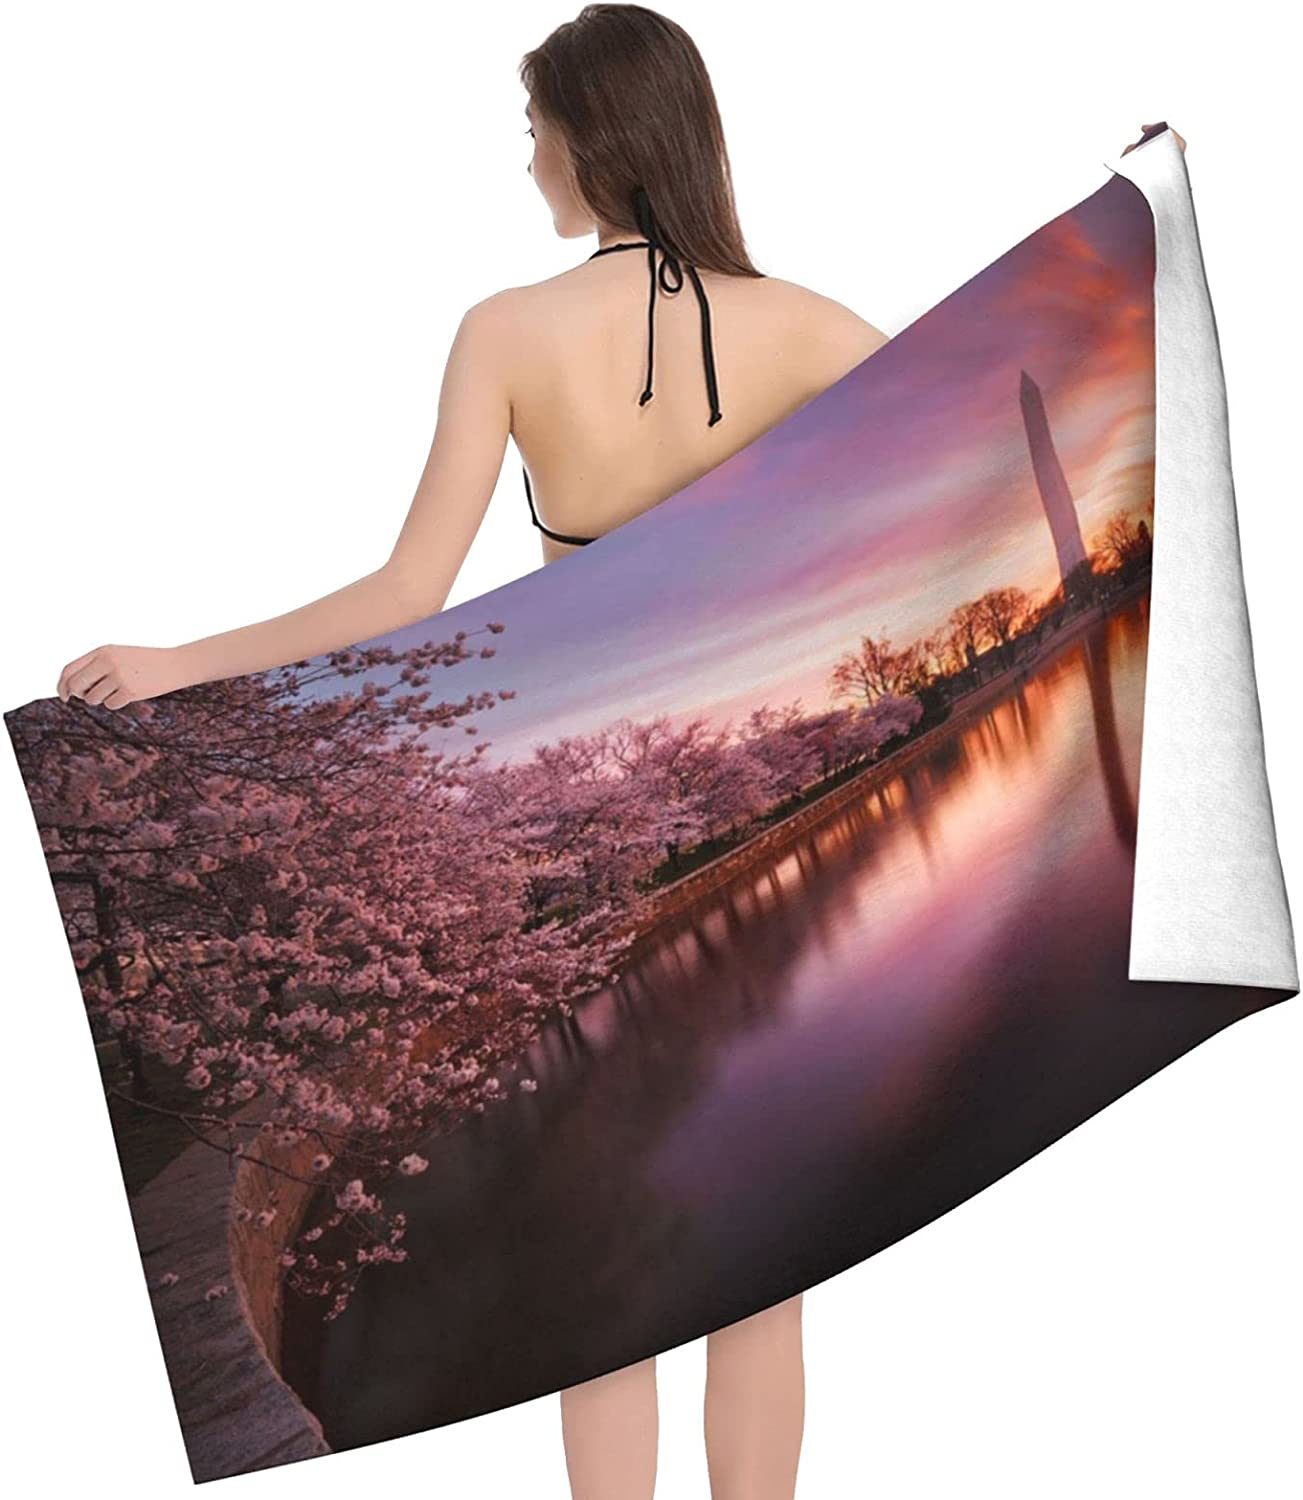 Cherry Blossom Print Adult Beach Towels Discount is also underway - Towel Alternative dealer Sid Double